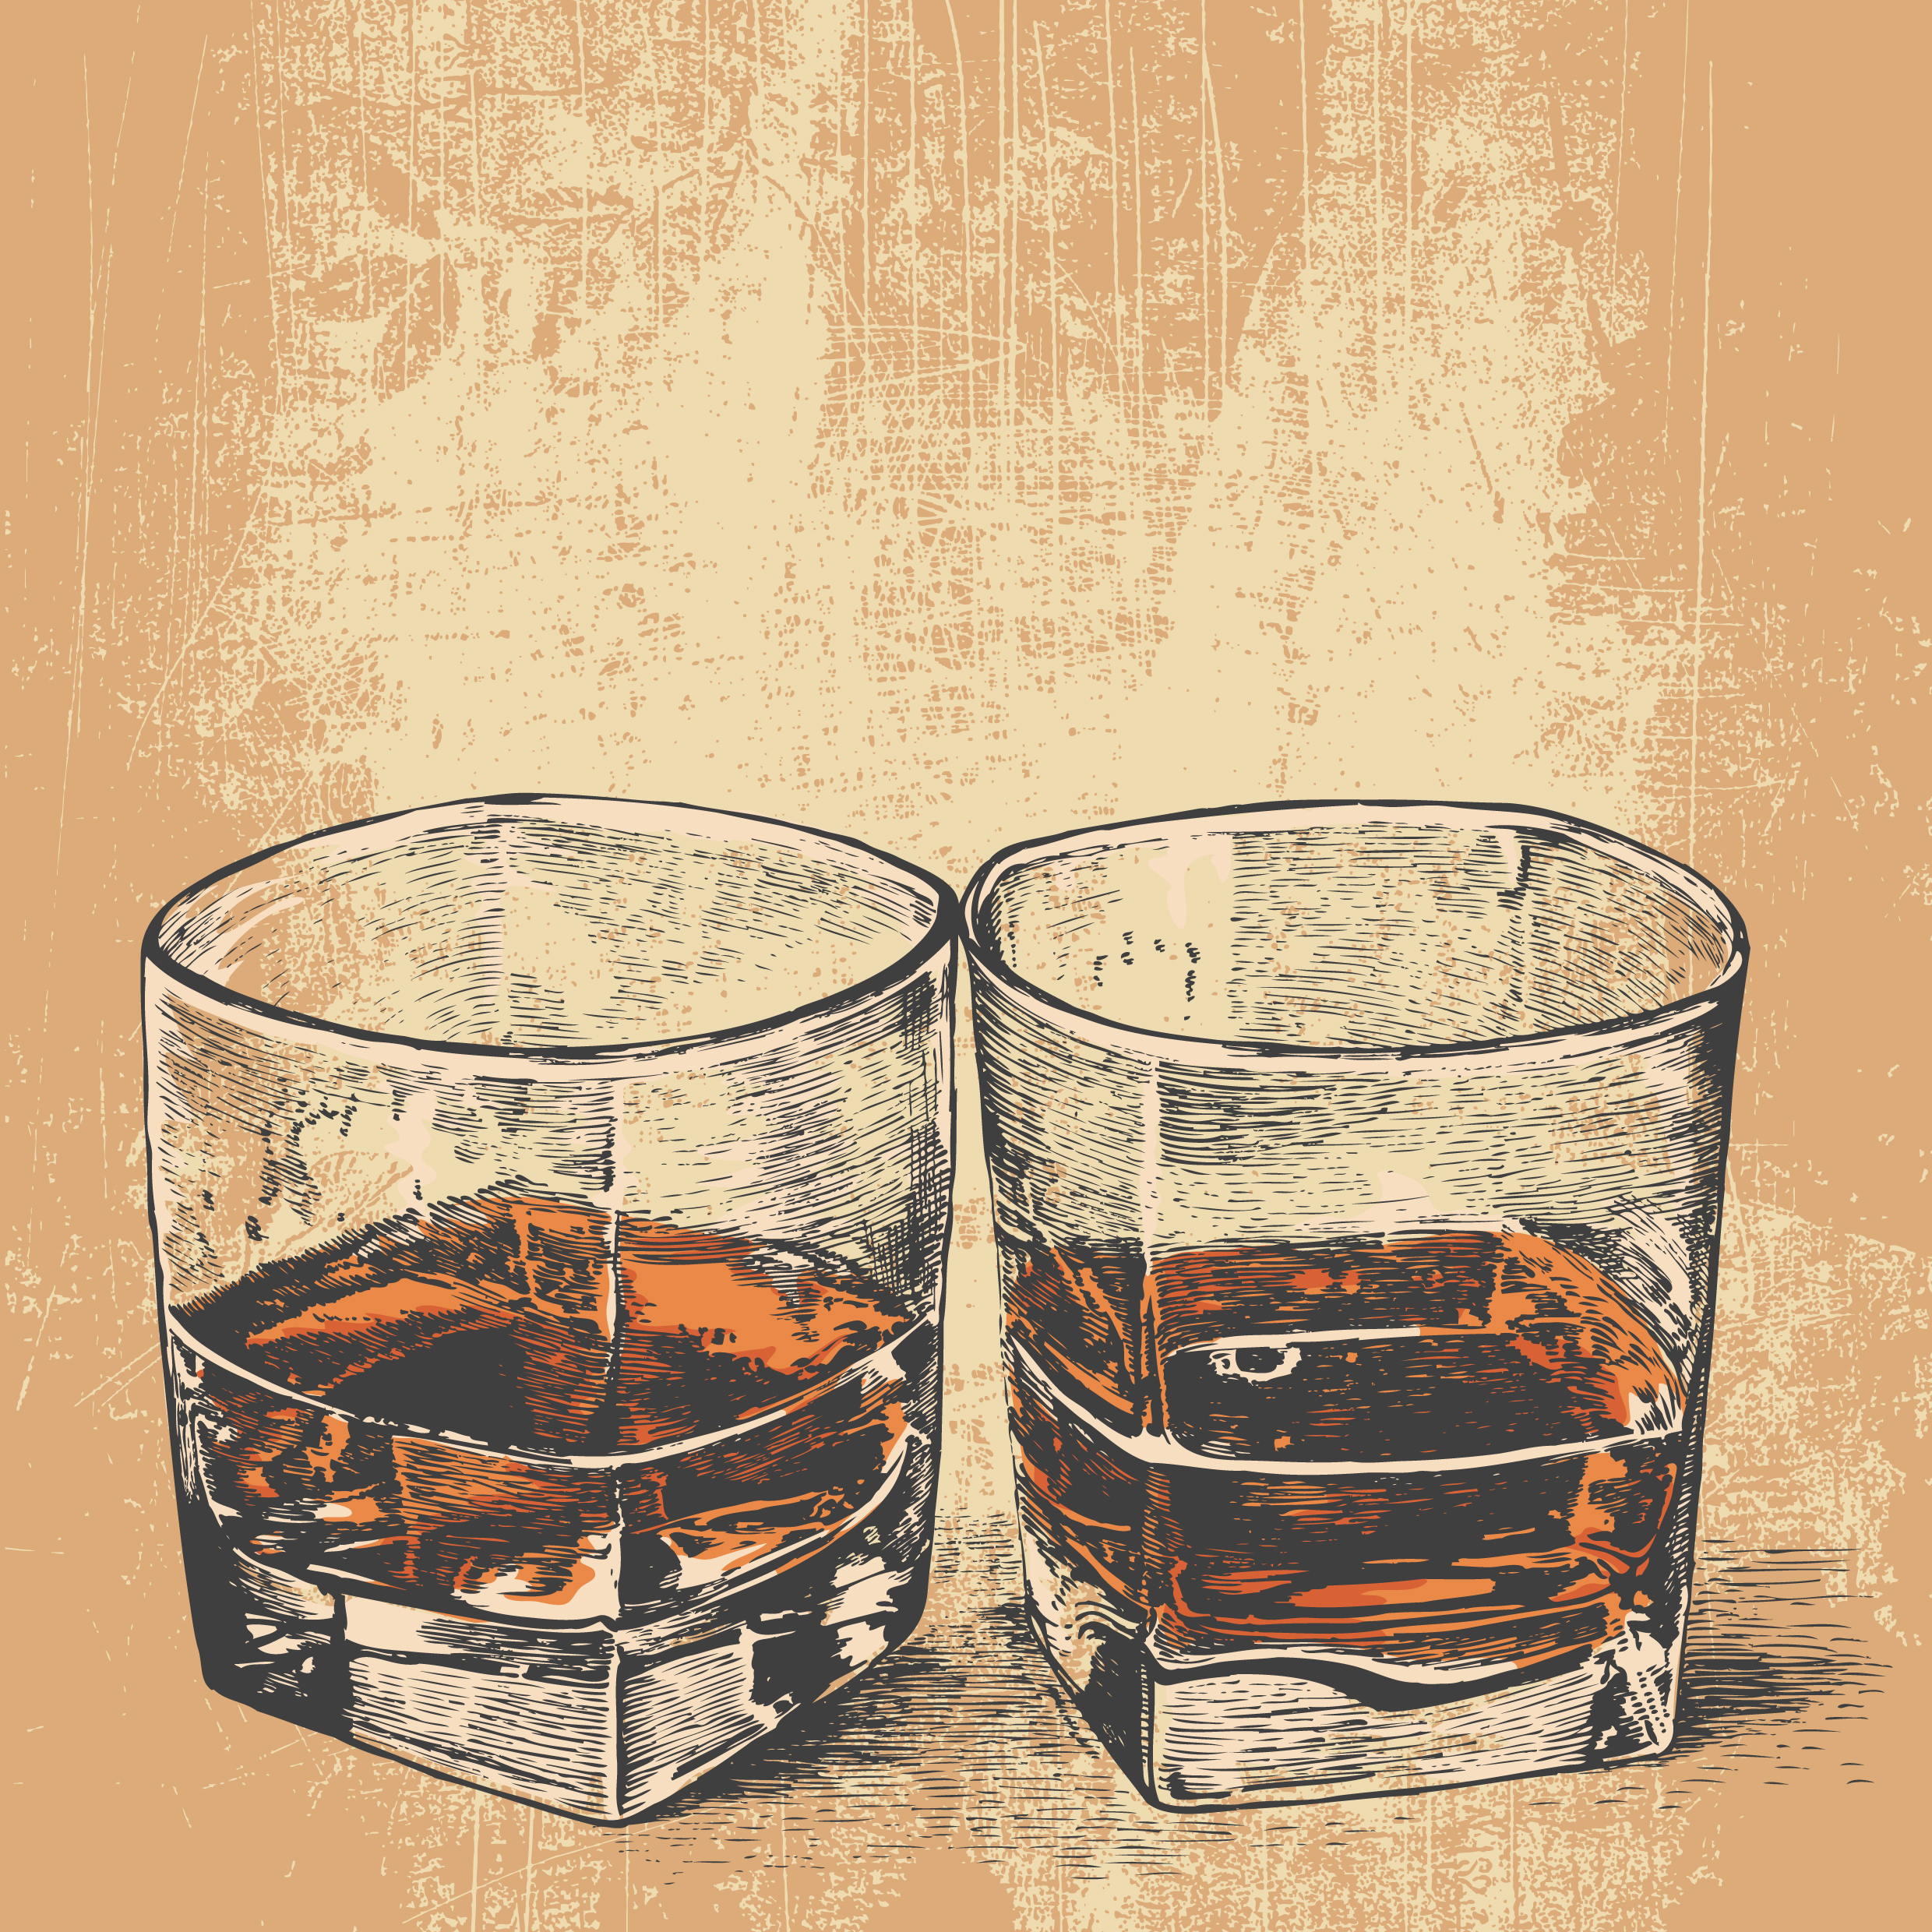 Pappy v. Fireball: Two Hot Whiskeys With Wildly Different Followings